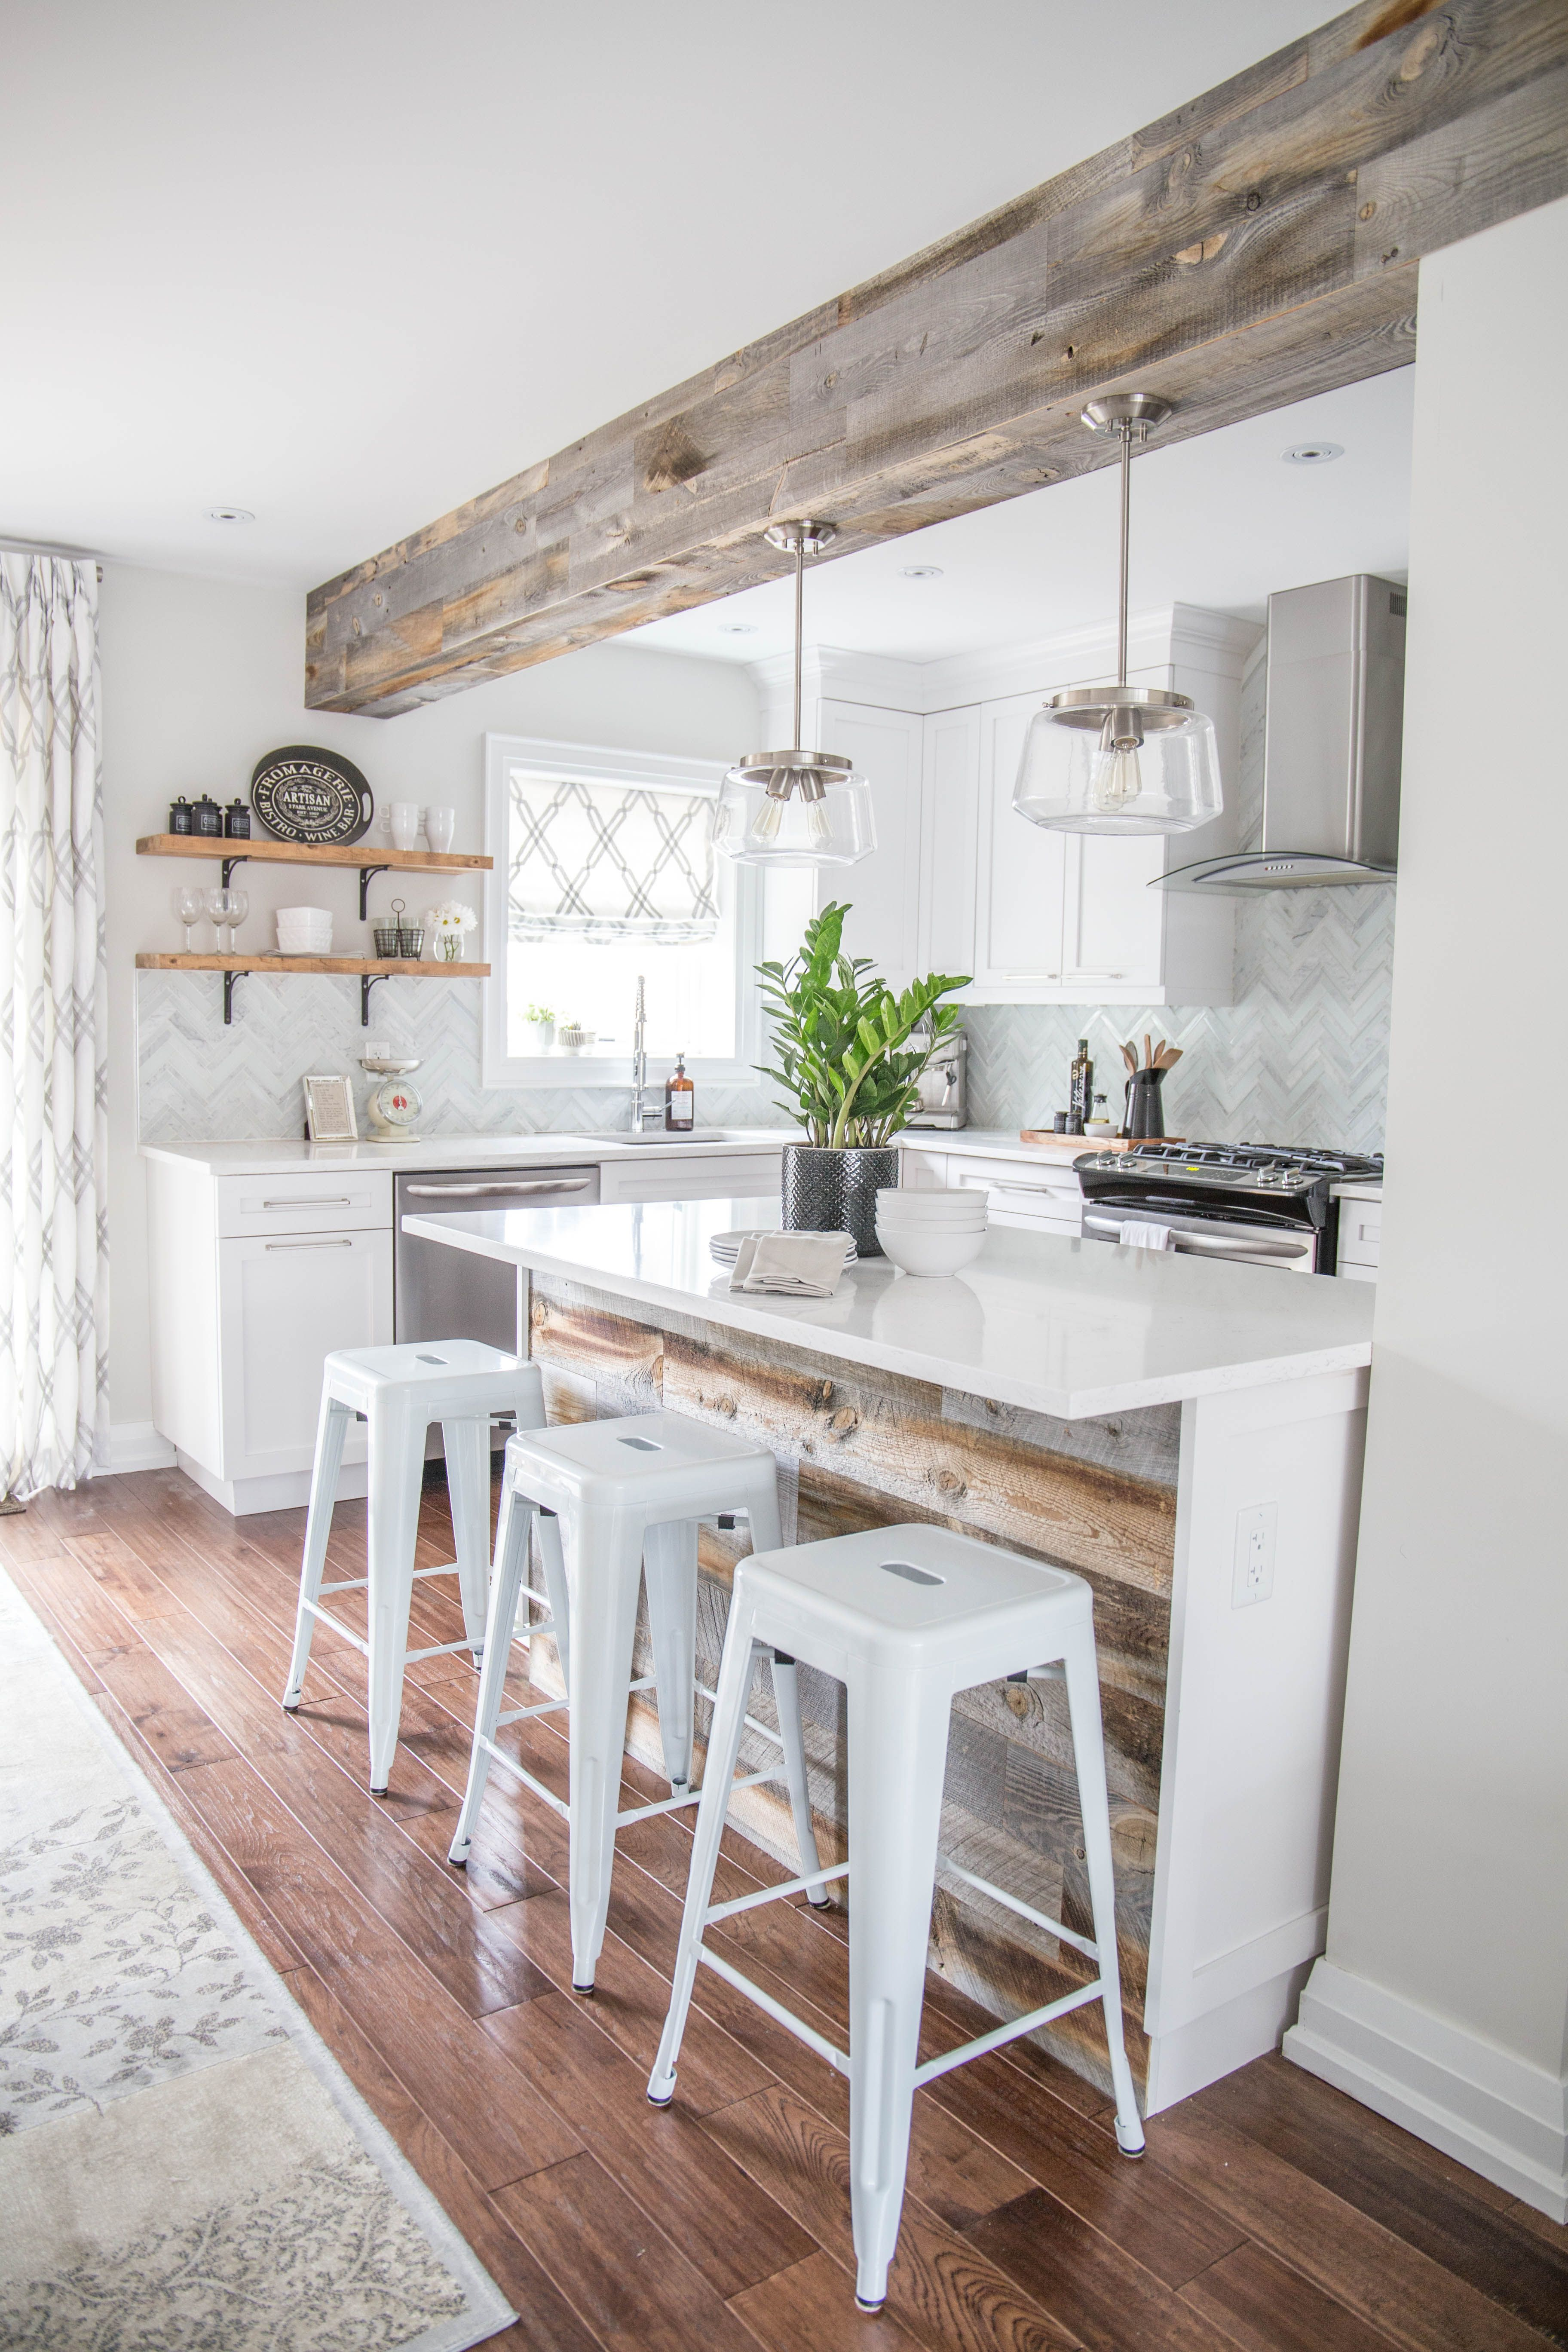 Property brothers kitchen reveal by karin bennett designs - Property brothers small kitchen designs ...